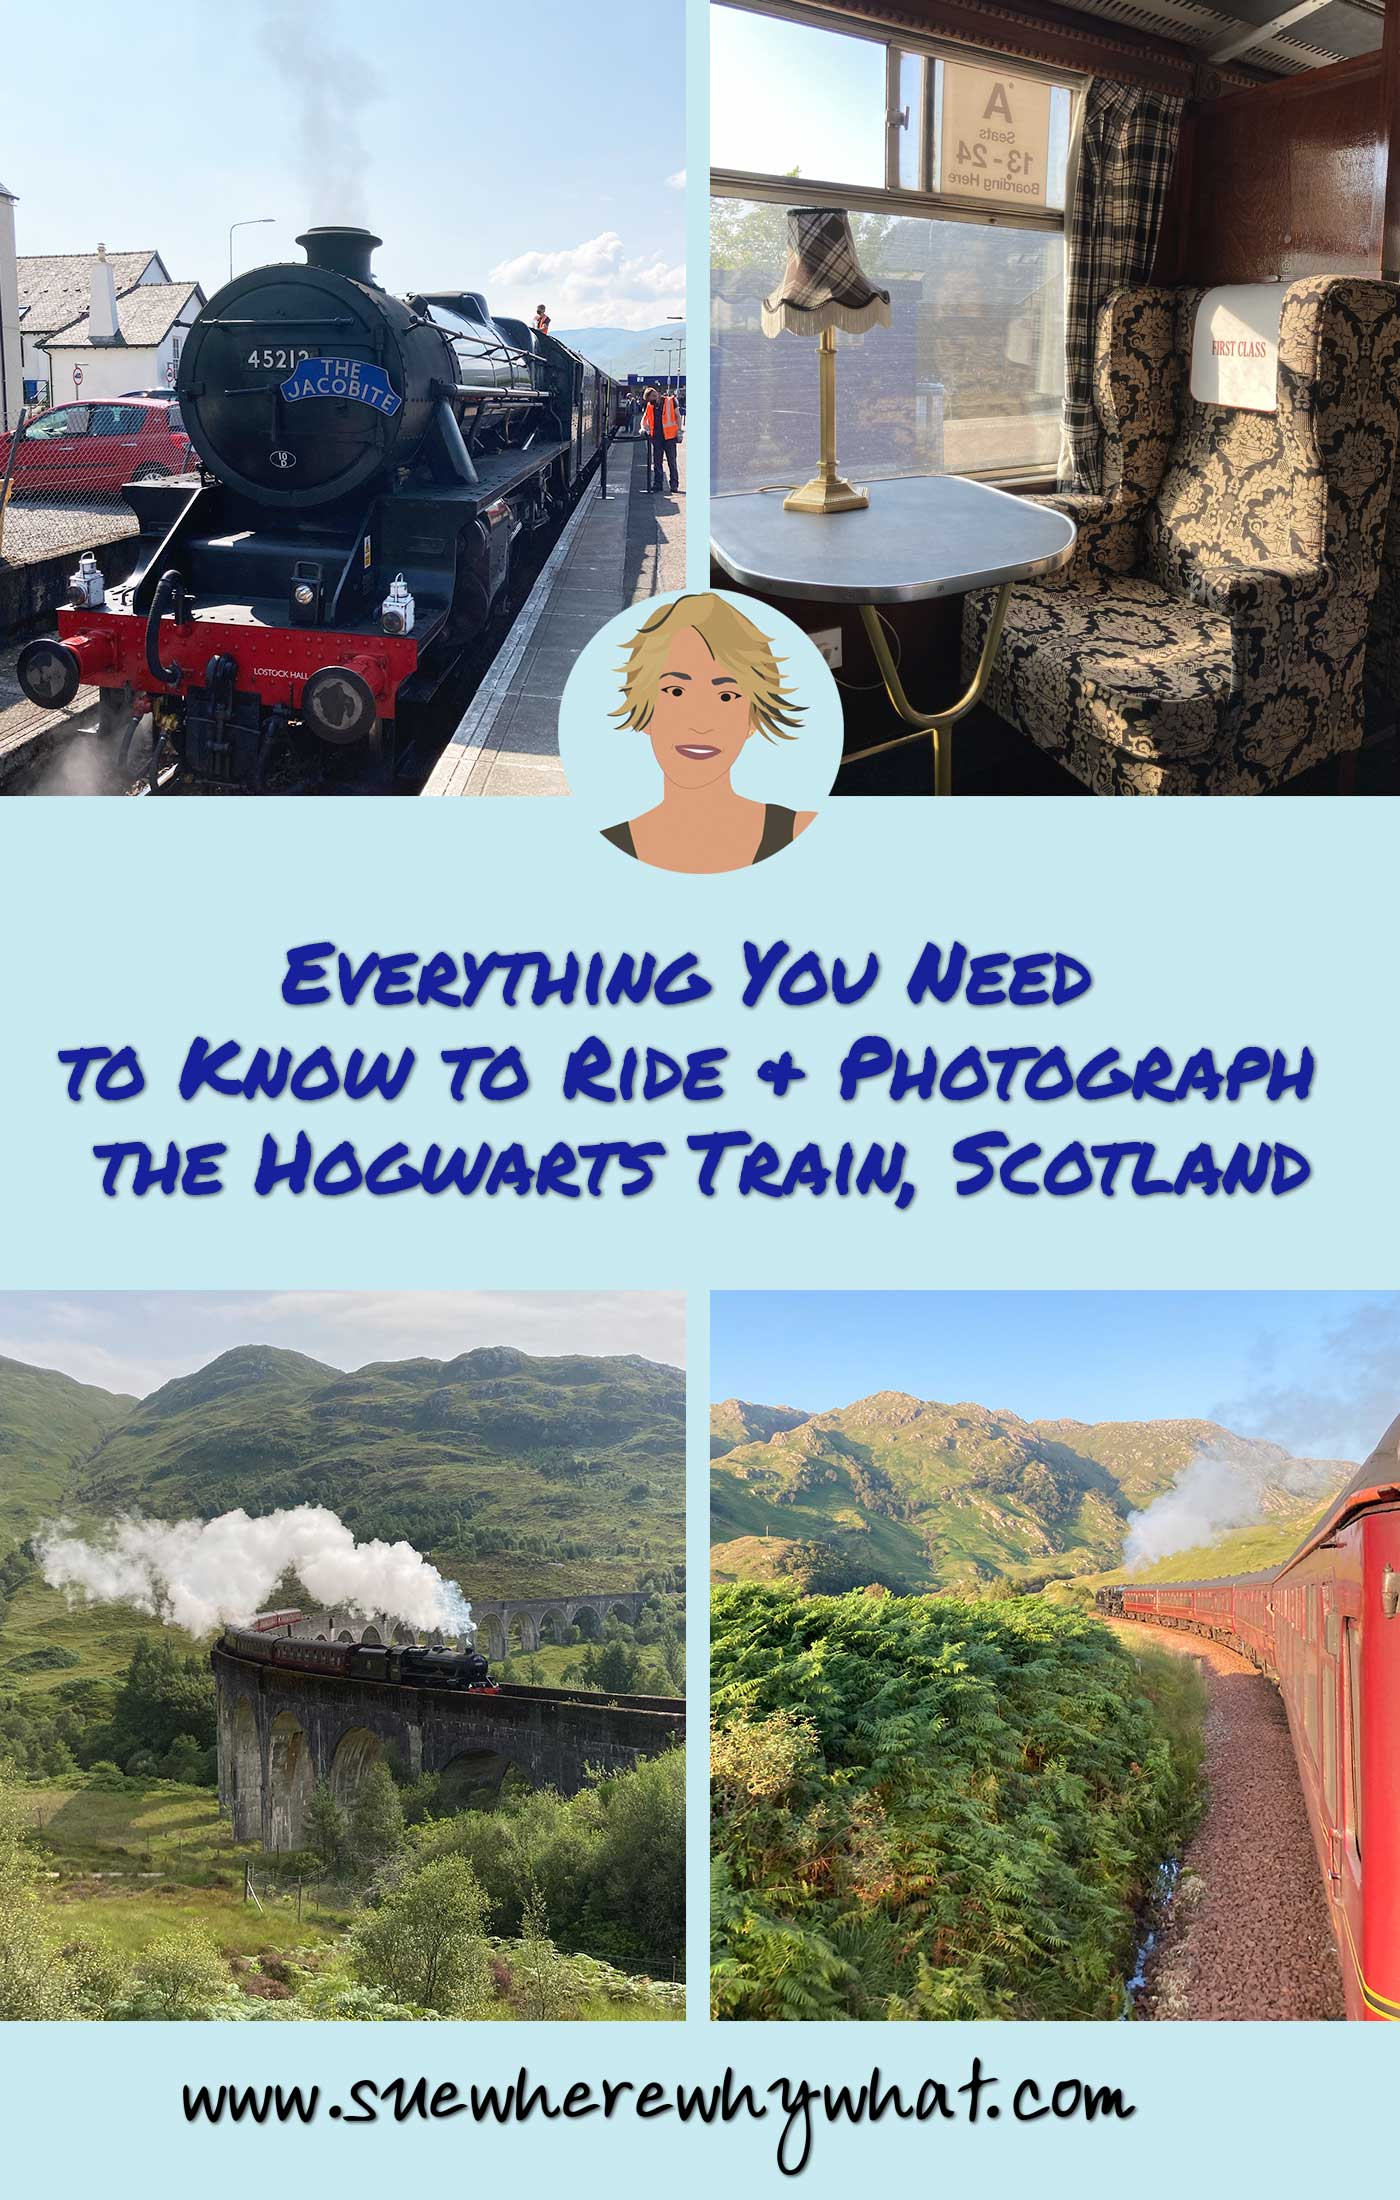 Everything You Need to Know to Ride & Photograph the Hogwarts Train, Scotland